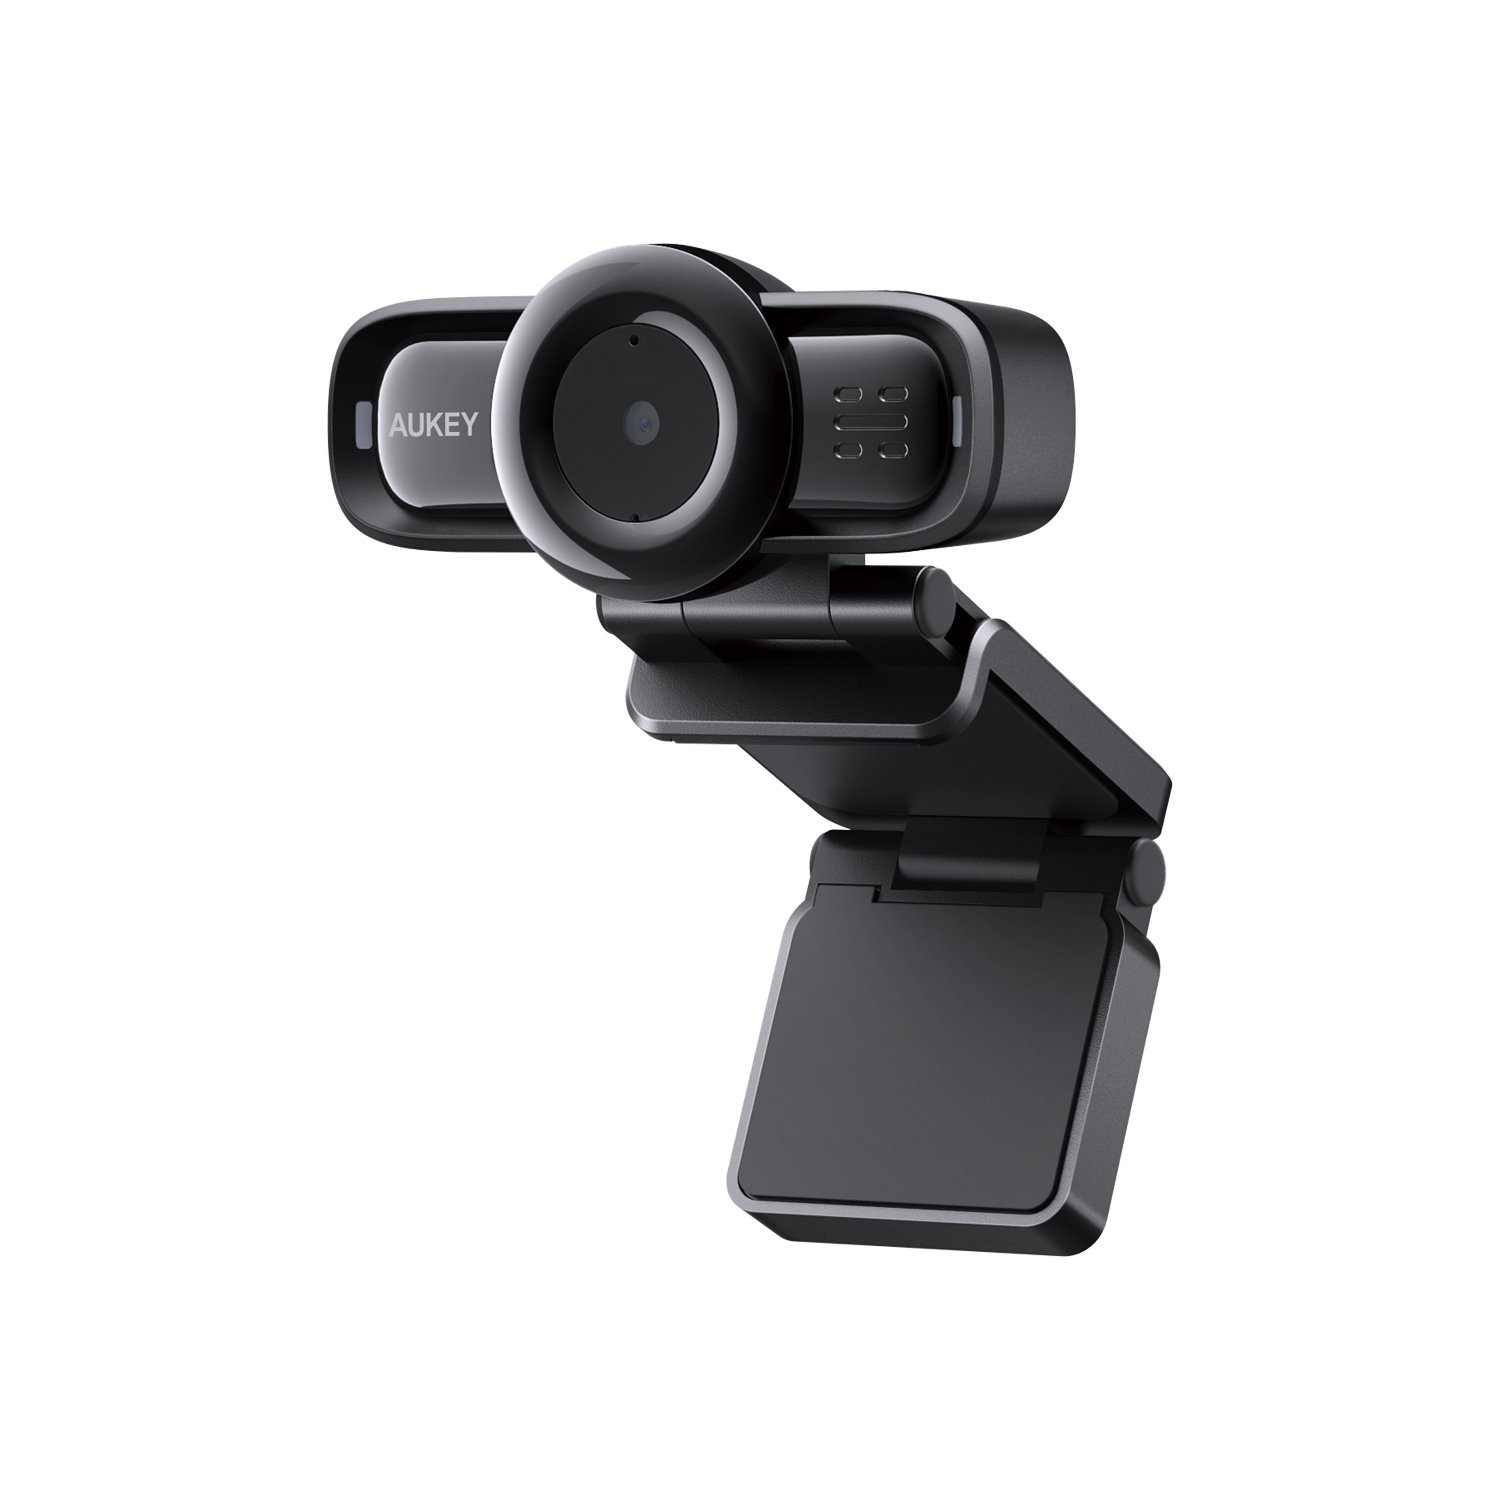 AUKEY Webcam 1080p Full HD with Autofocus, Noise Reduction Microphones, USB Webcam for Widescreen Video Calling and Recording PC-LM3